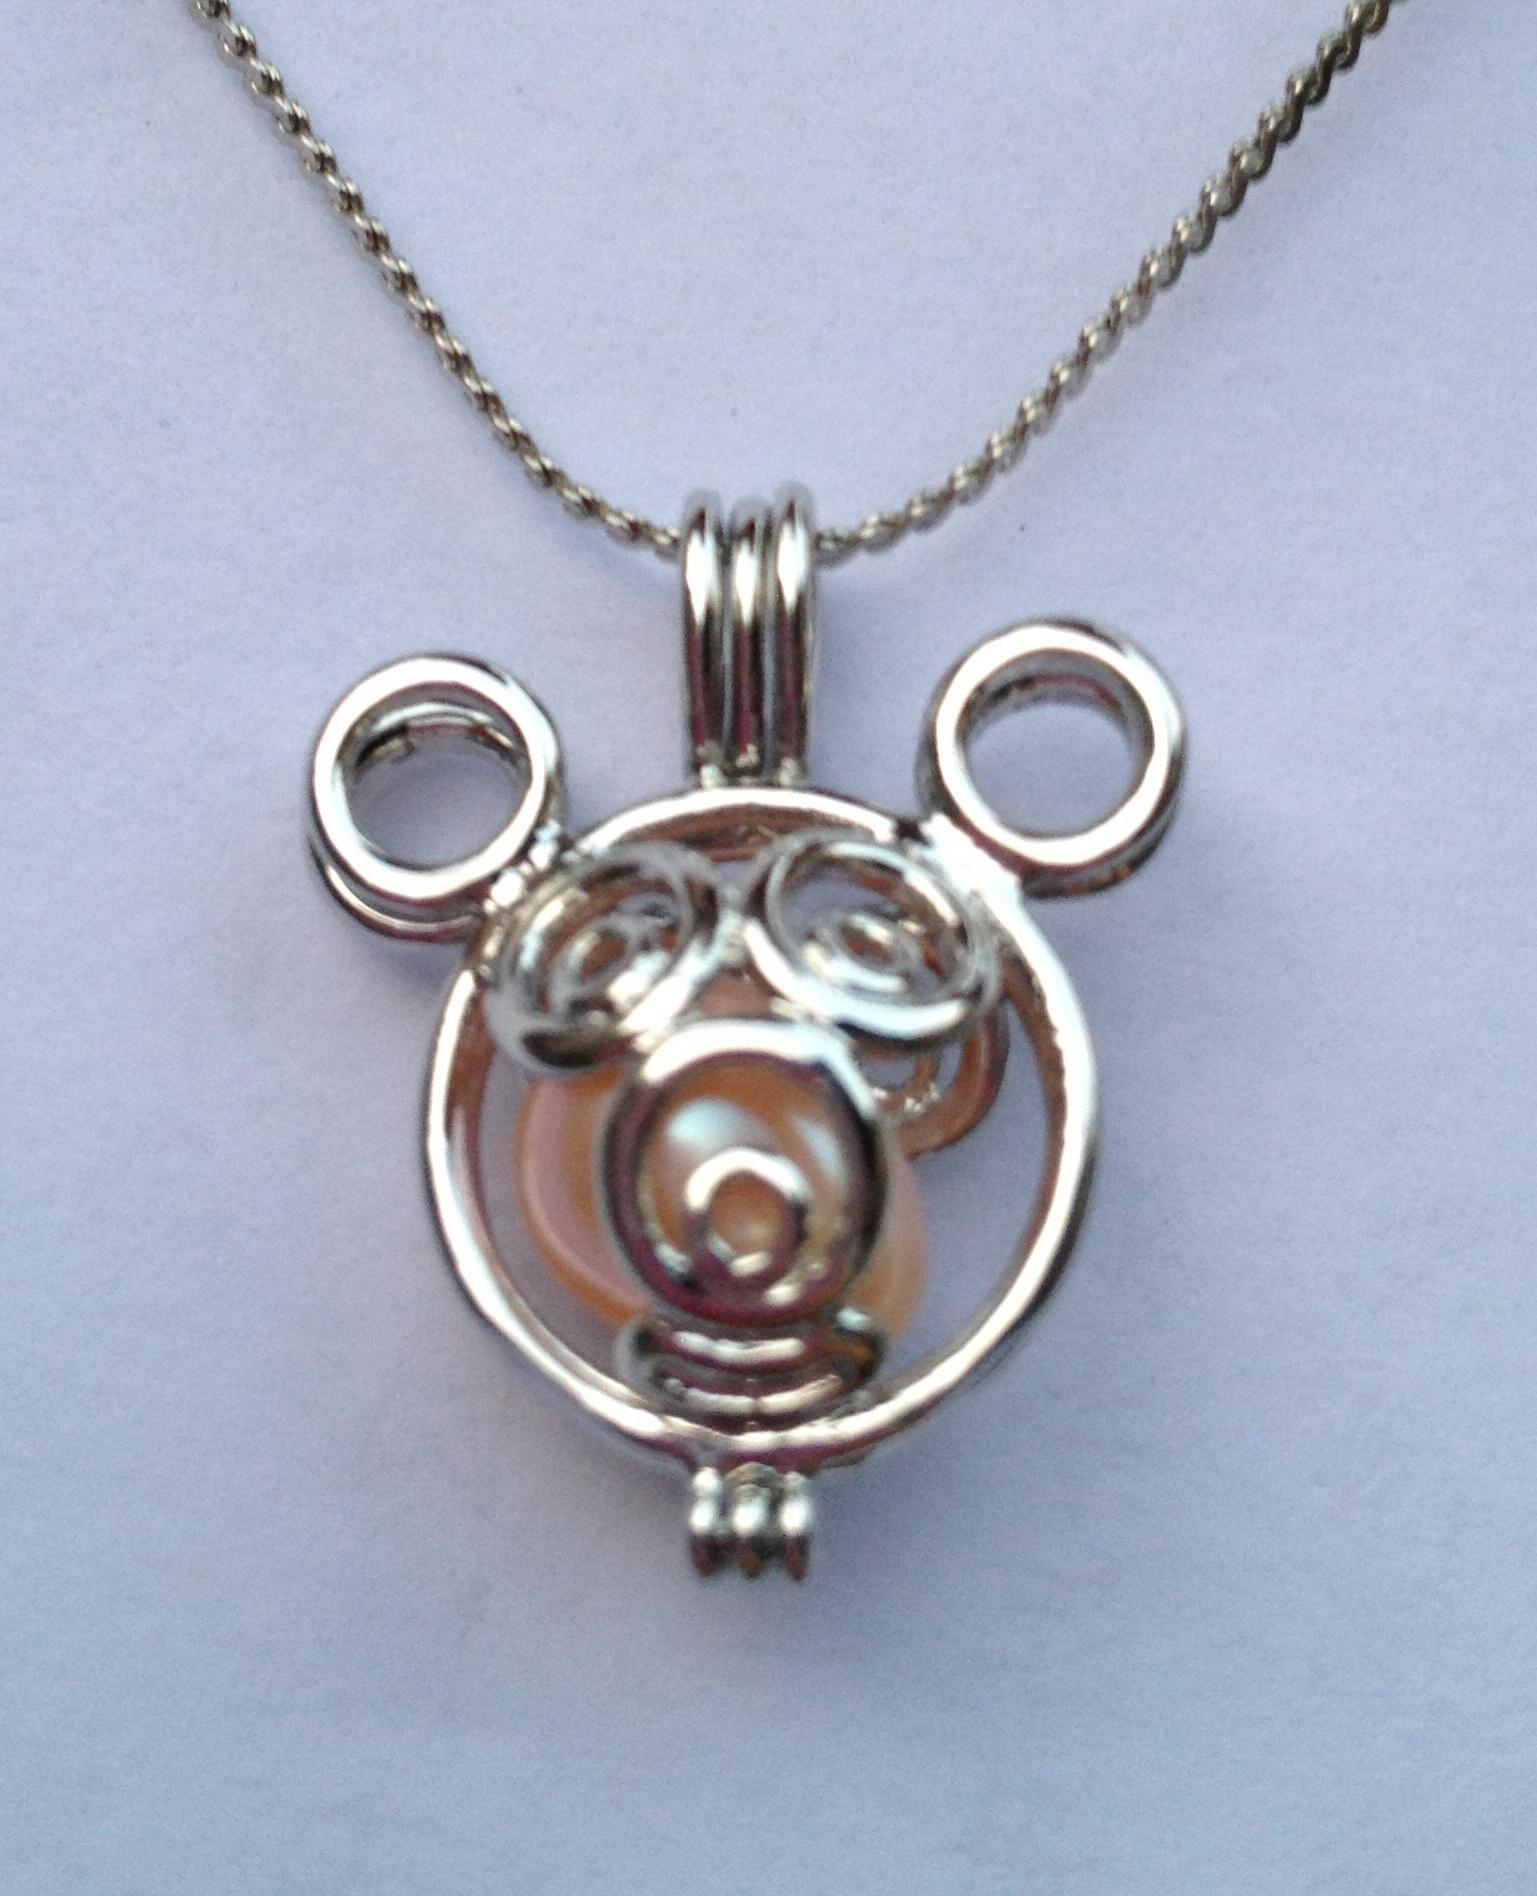 Mickey Mouse style Perle / Cristal / pierre gemme perles Cage Lockets, Wish perl